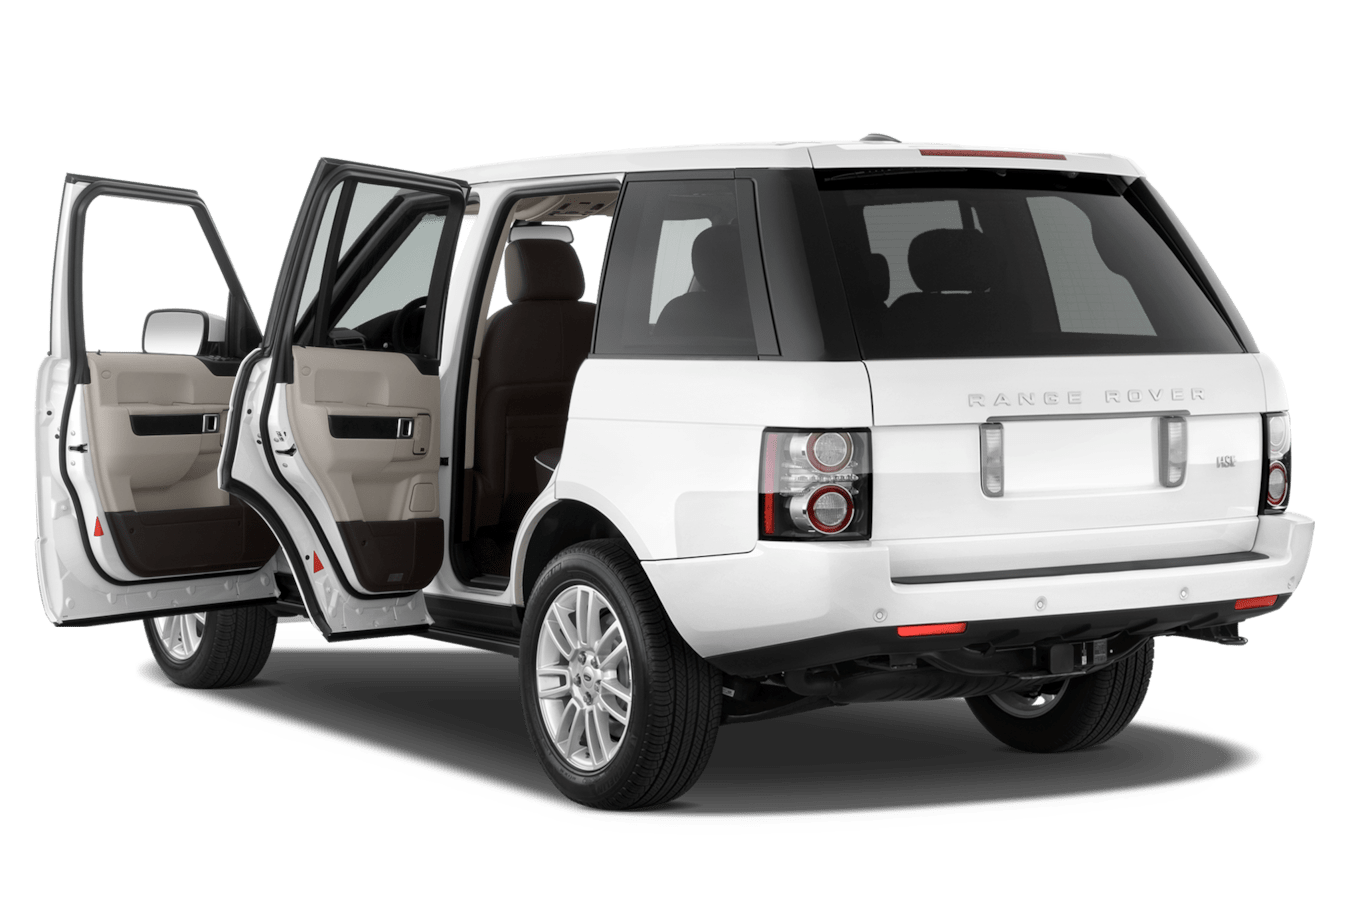 2010 Land Rover Range Rover Reviews and Rating